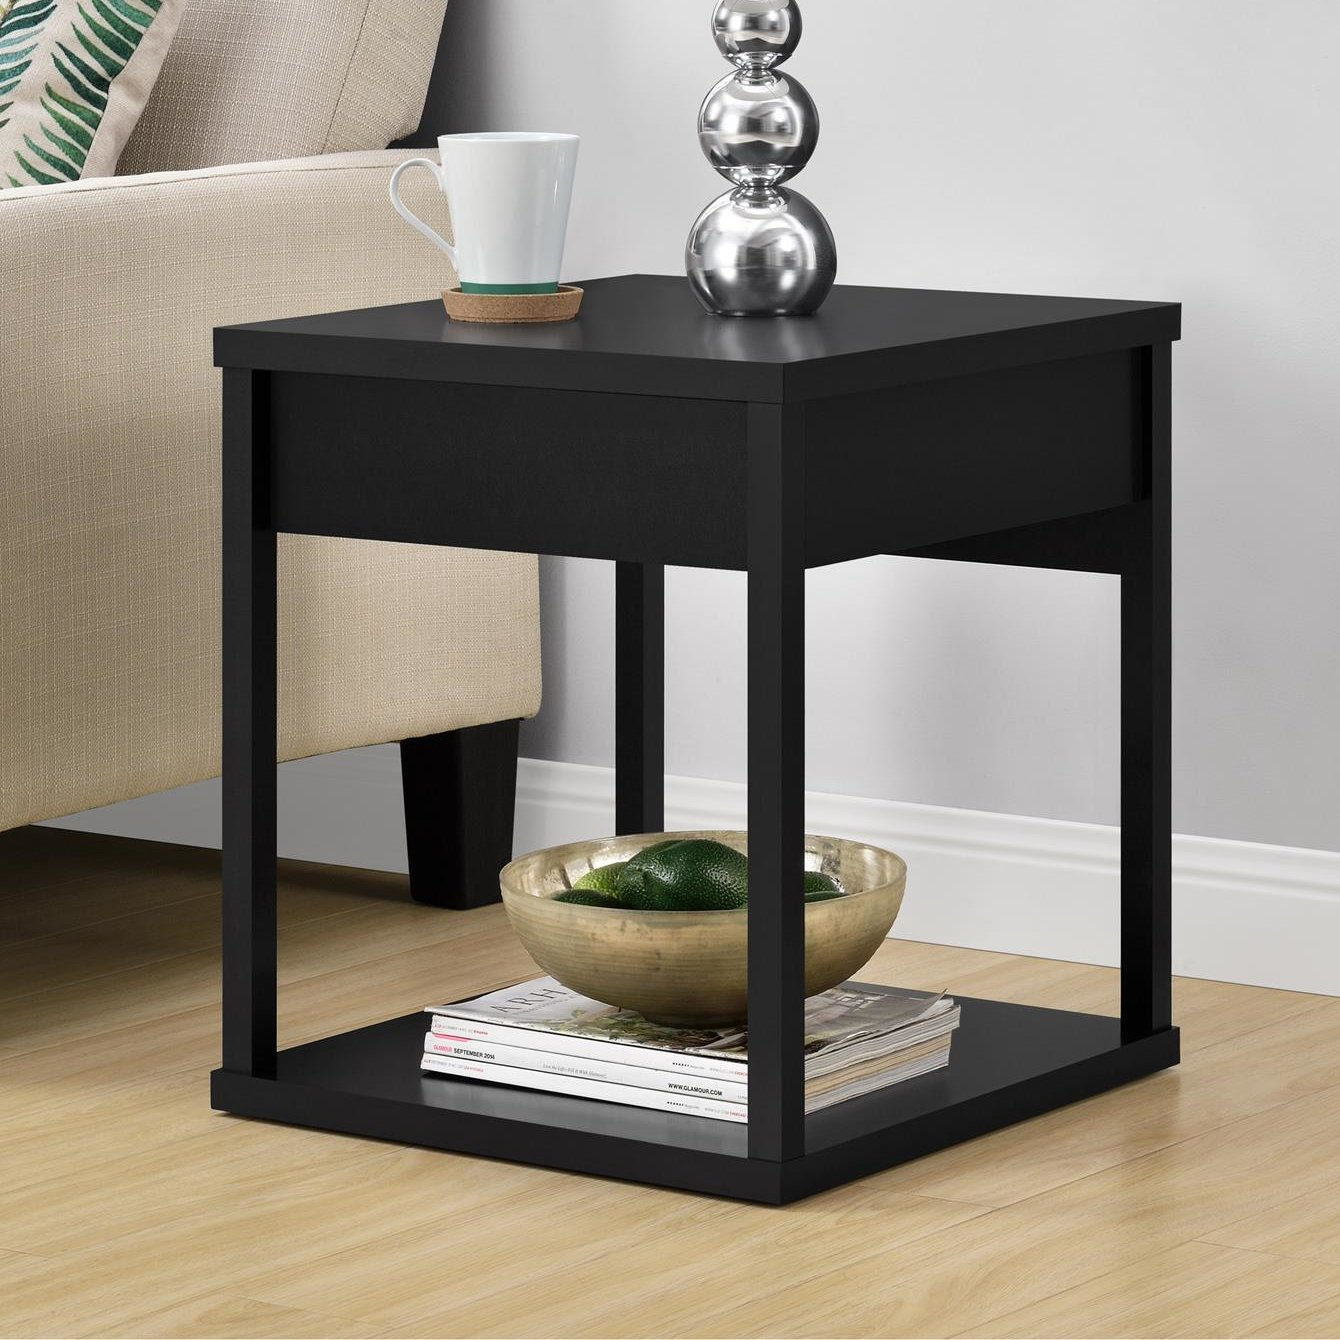 inch high end table annsville wood accent five below elastic covers wooden chest coffee green metal black gold console living room drawing chinese circular patio cover teal